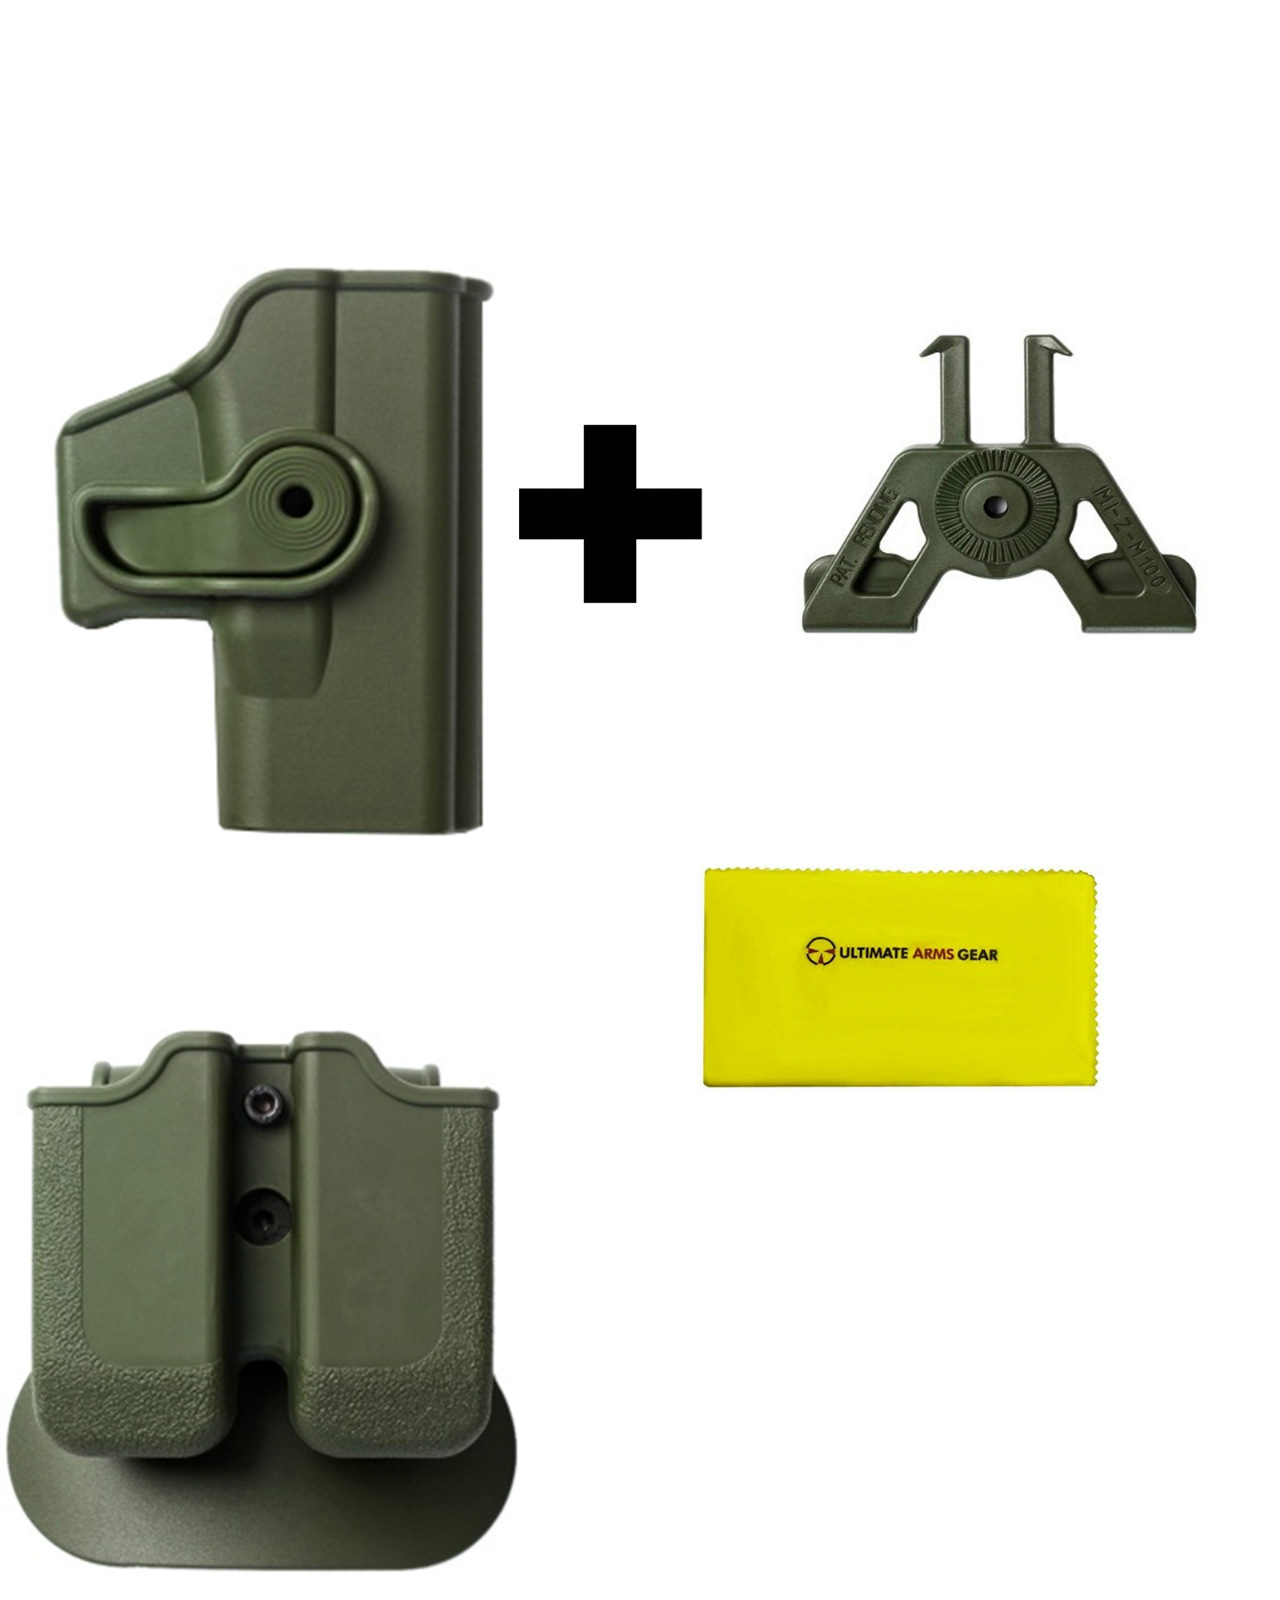 IMI Defense Z2000 MP00 Double Mag Holder & Paddle + Z1040 360� Rotate Holster Glock 23 26 27 28 33 36 Gen 4, OD Green +... by